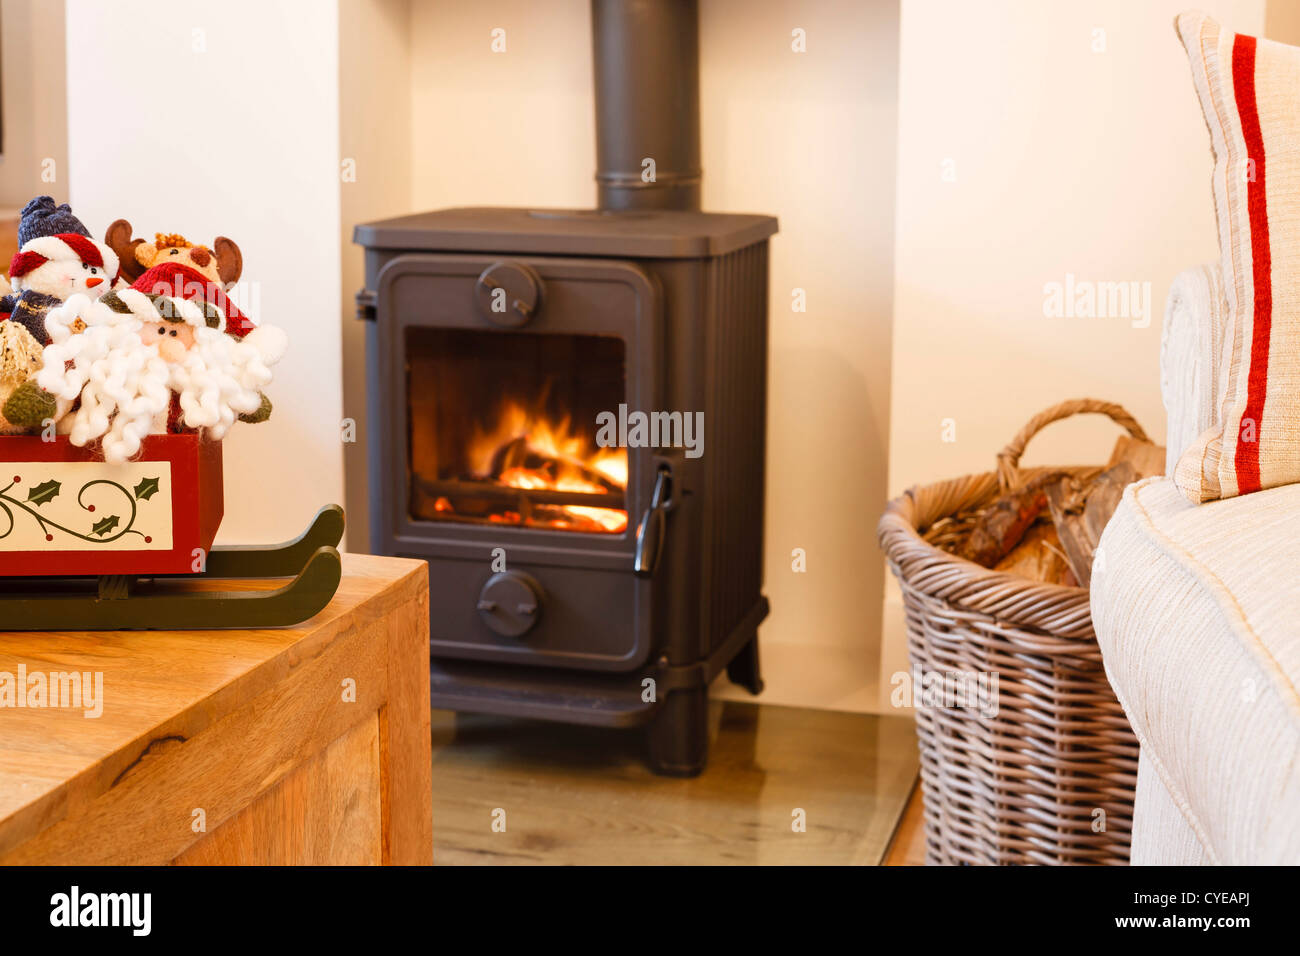 Wood burning stove and christmas ornaments in a modern living room Stock Photo